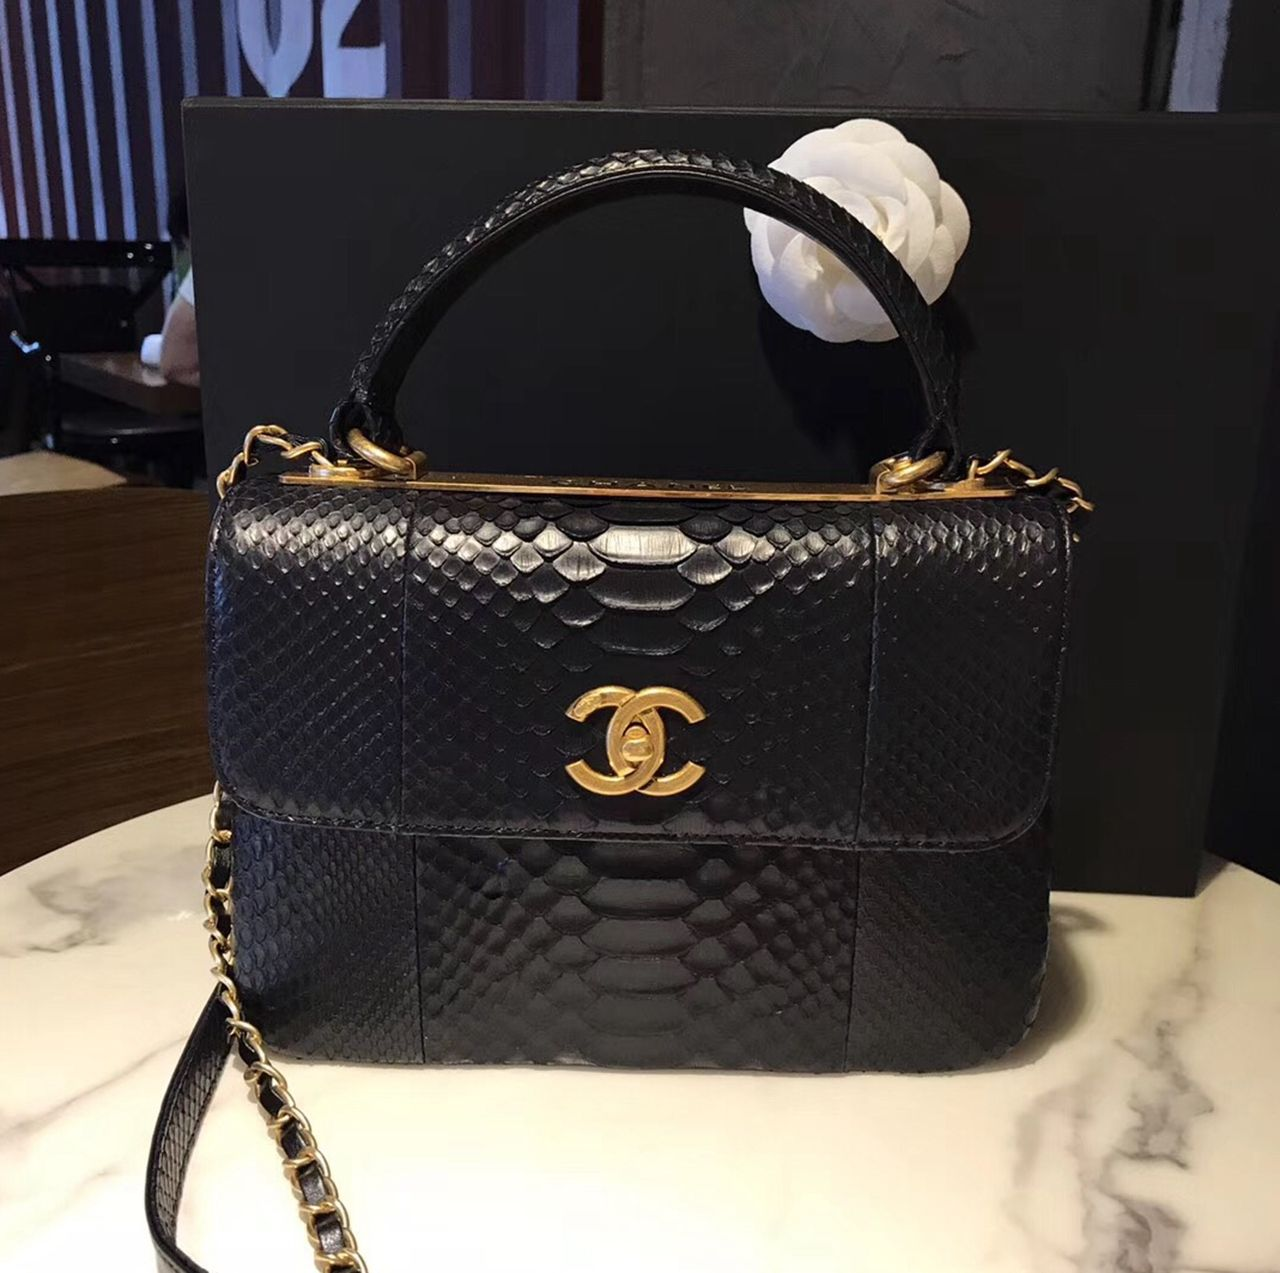 50aa1c13e901 Chanel Small Trendy CC Flap Bag With Top Handle In Black Python Leather 2017